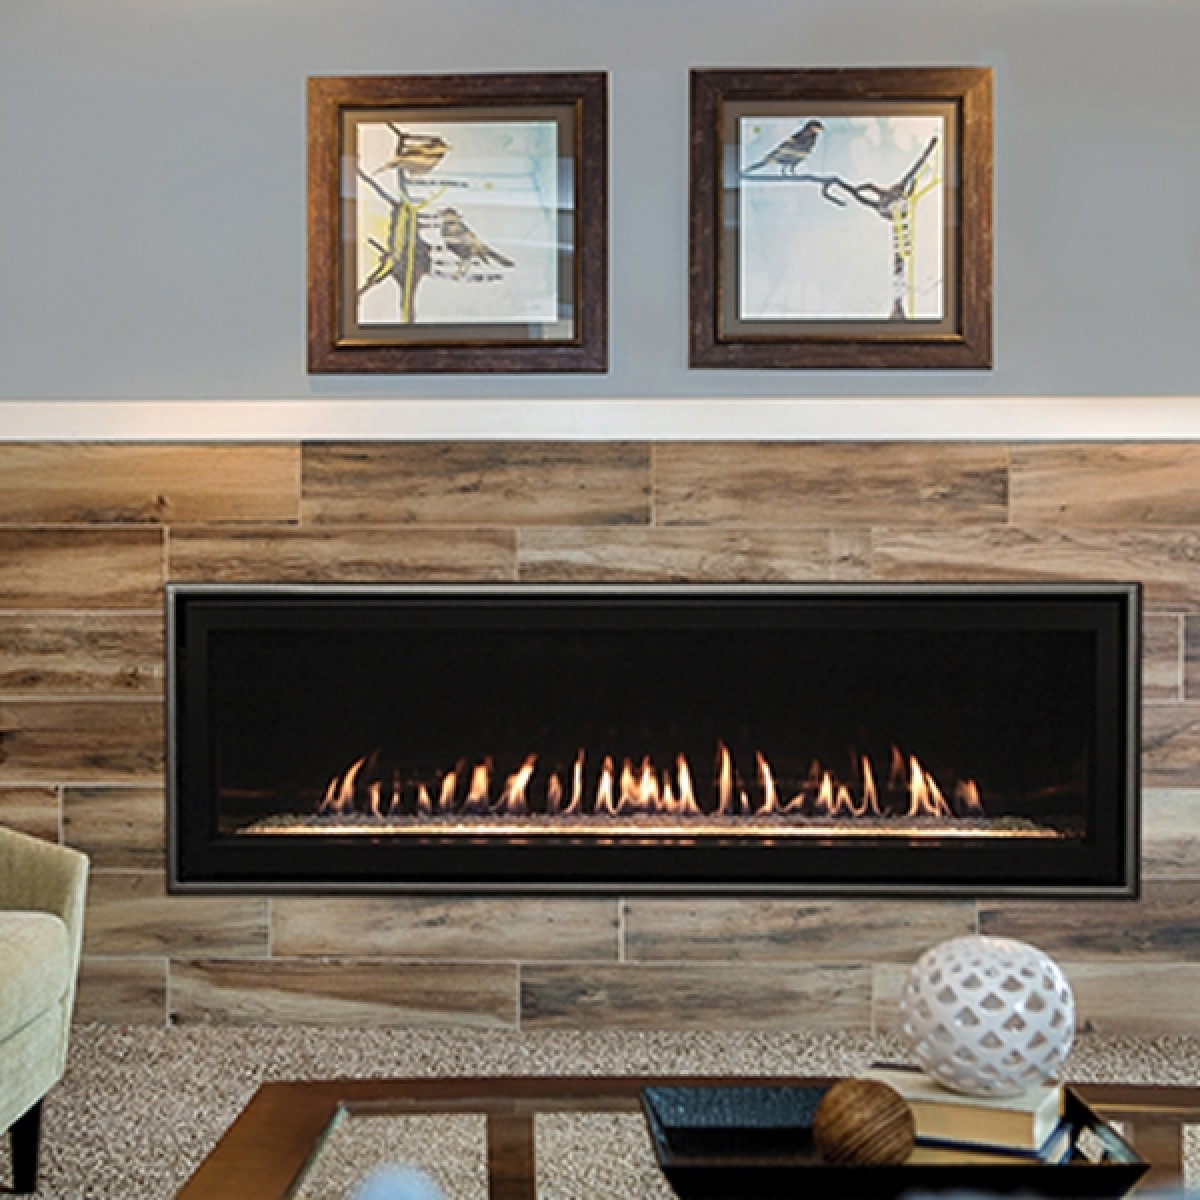 fireplace ideas to of mantels year this tiles living collection popular a need and pin favorite most designs photos country know lp s you